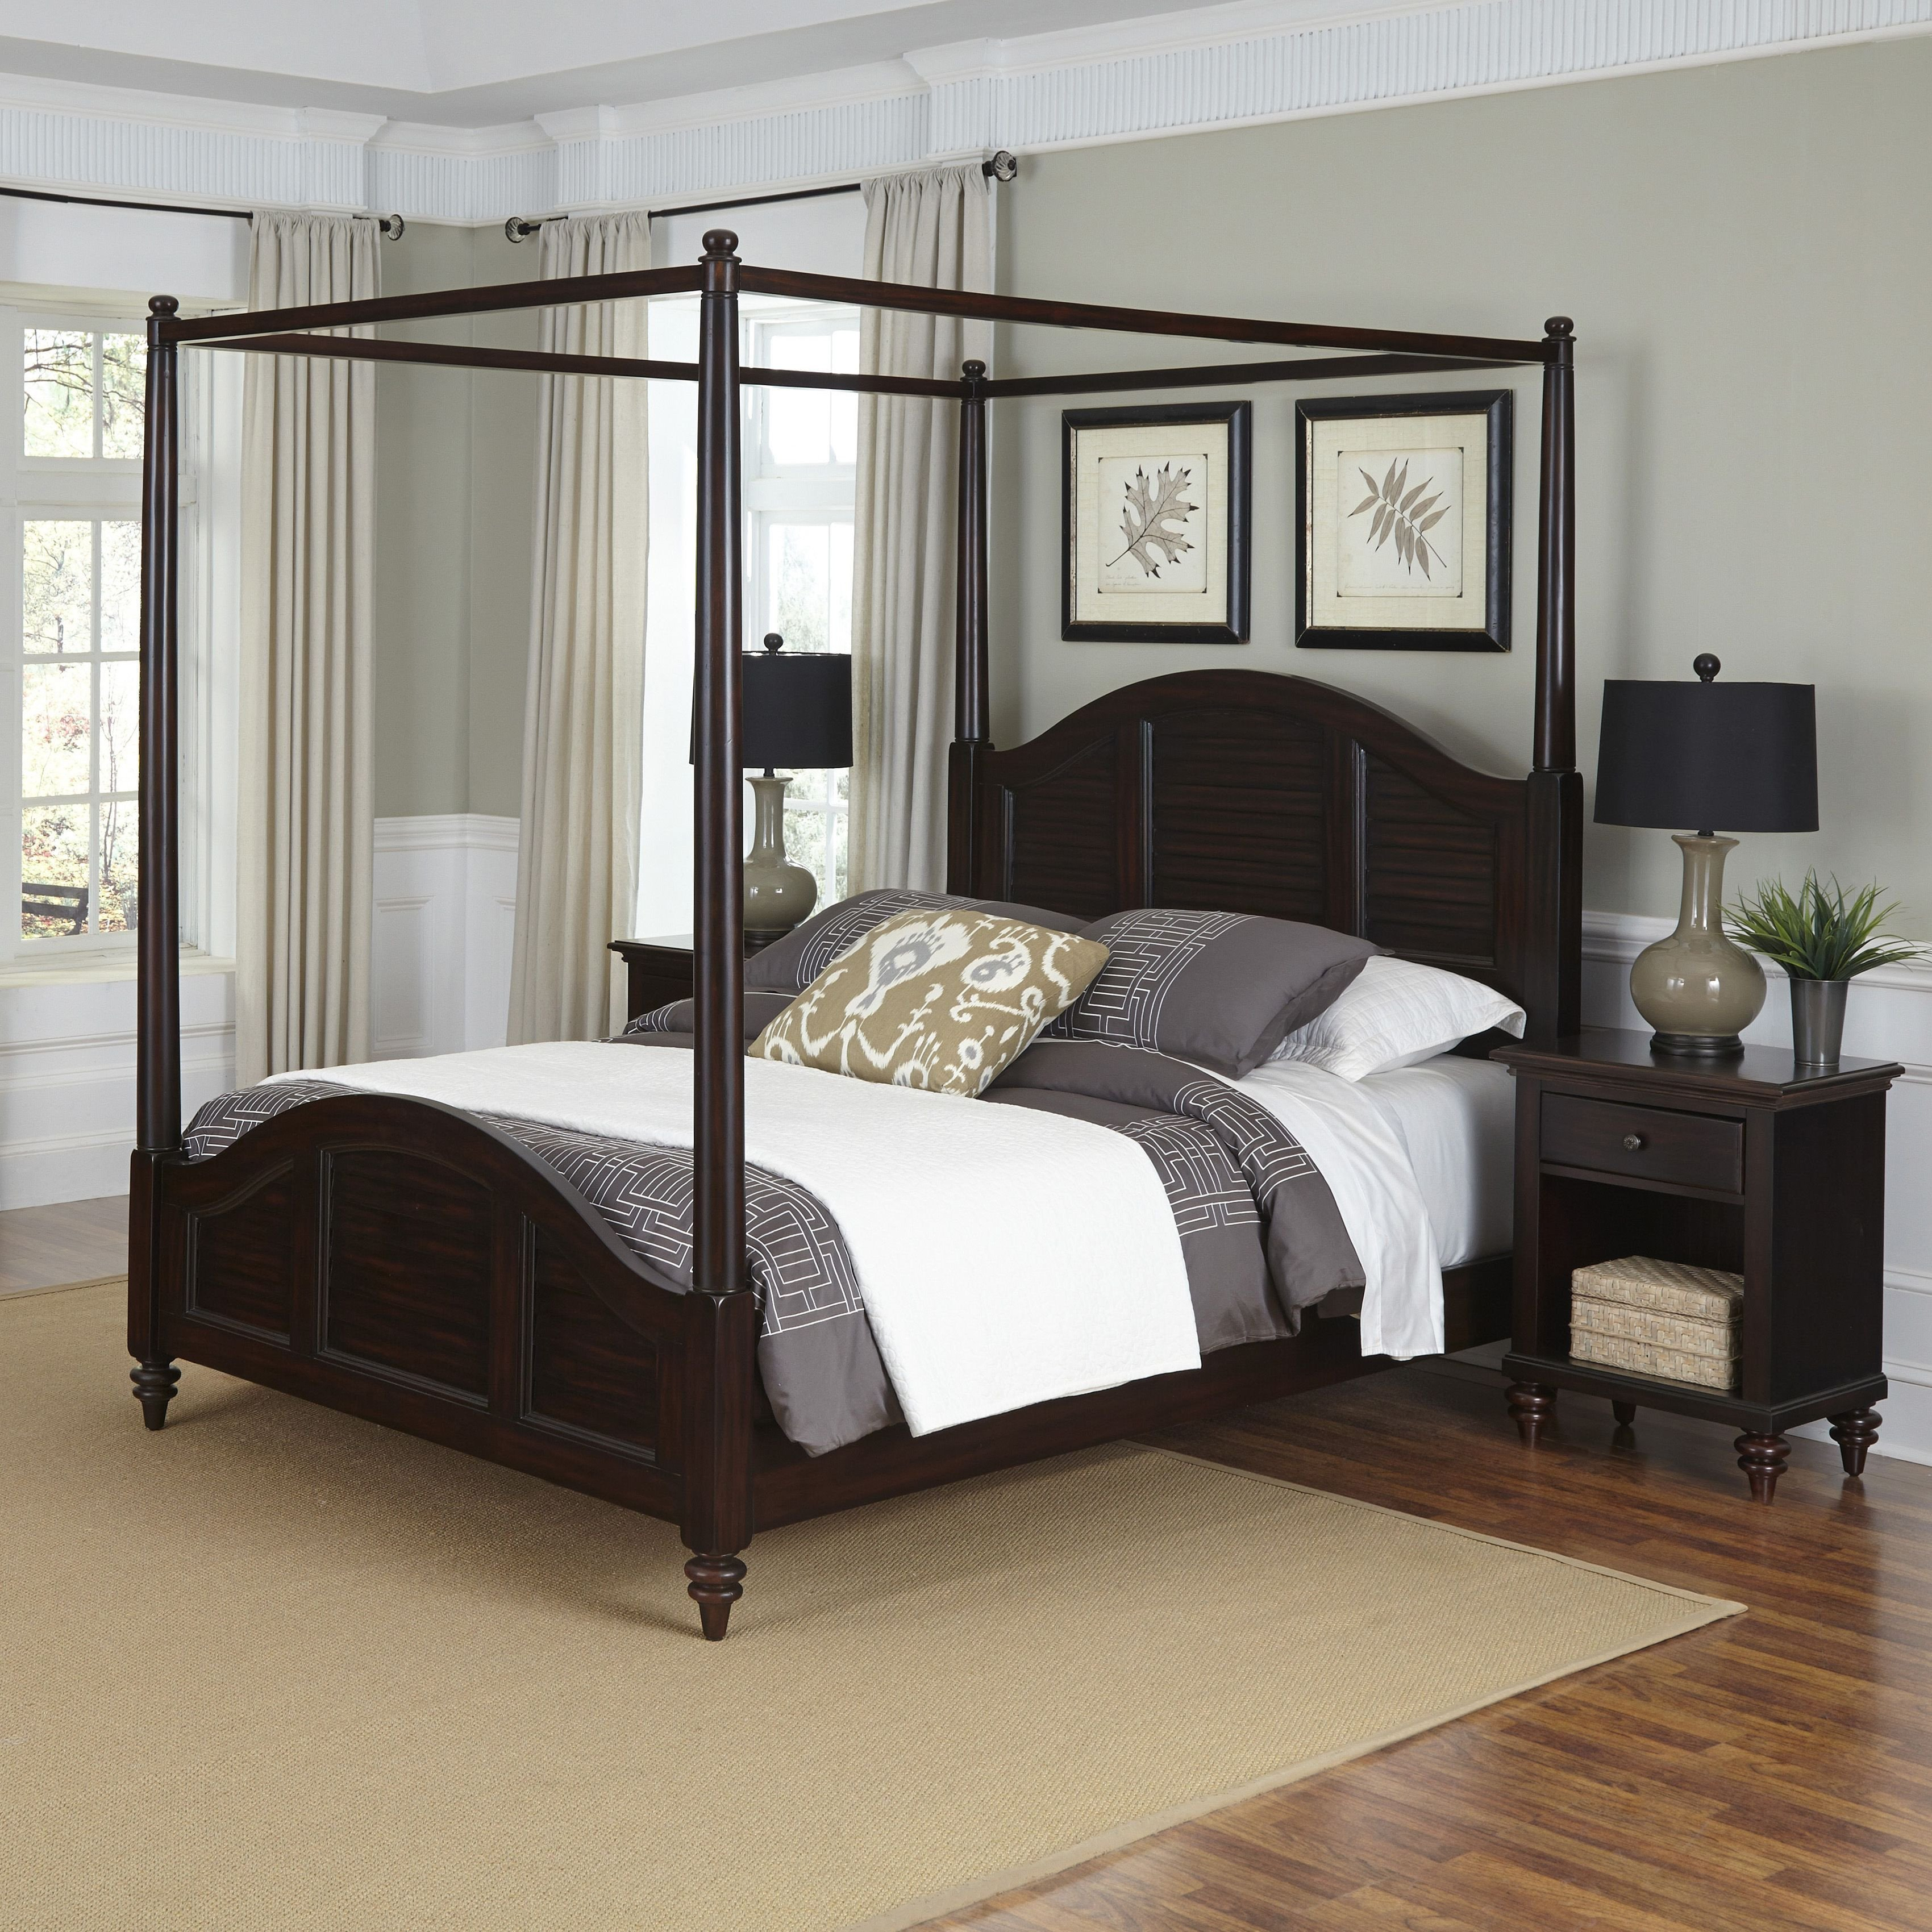 Sears Furniture Bedroom Set Best Of Home Styles Bermuda Queen Canopy Bed and Two Night Stands